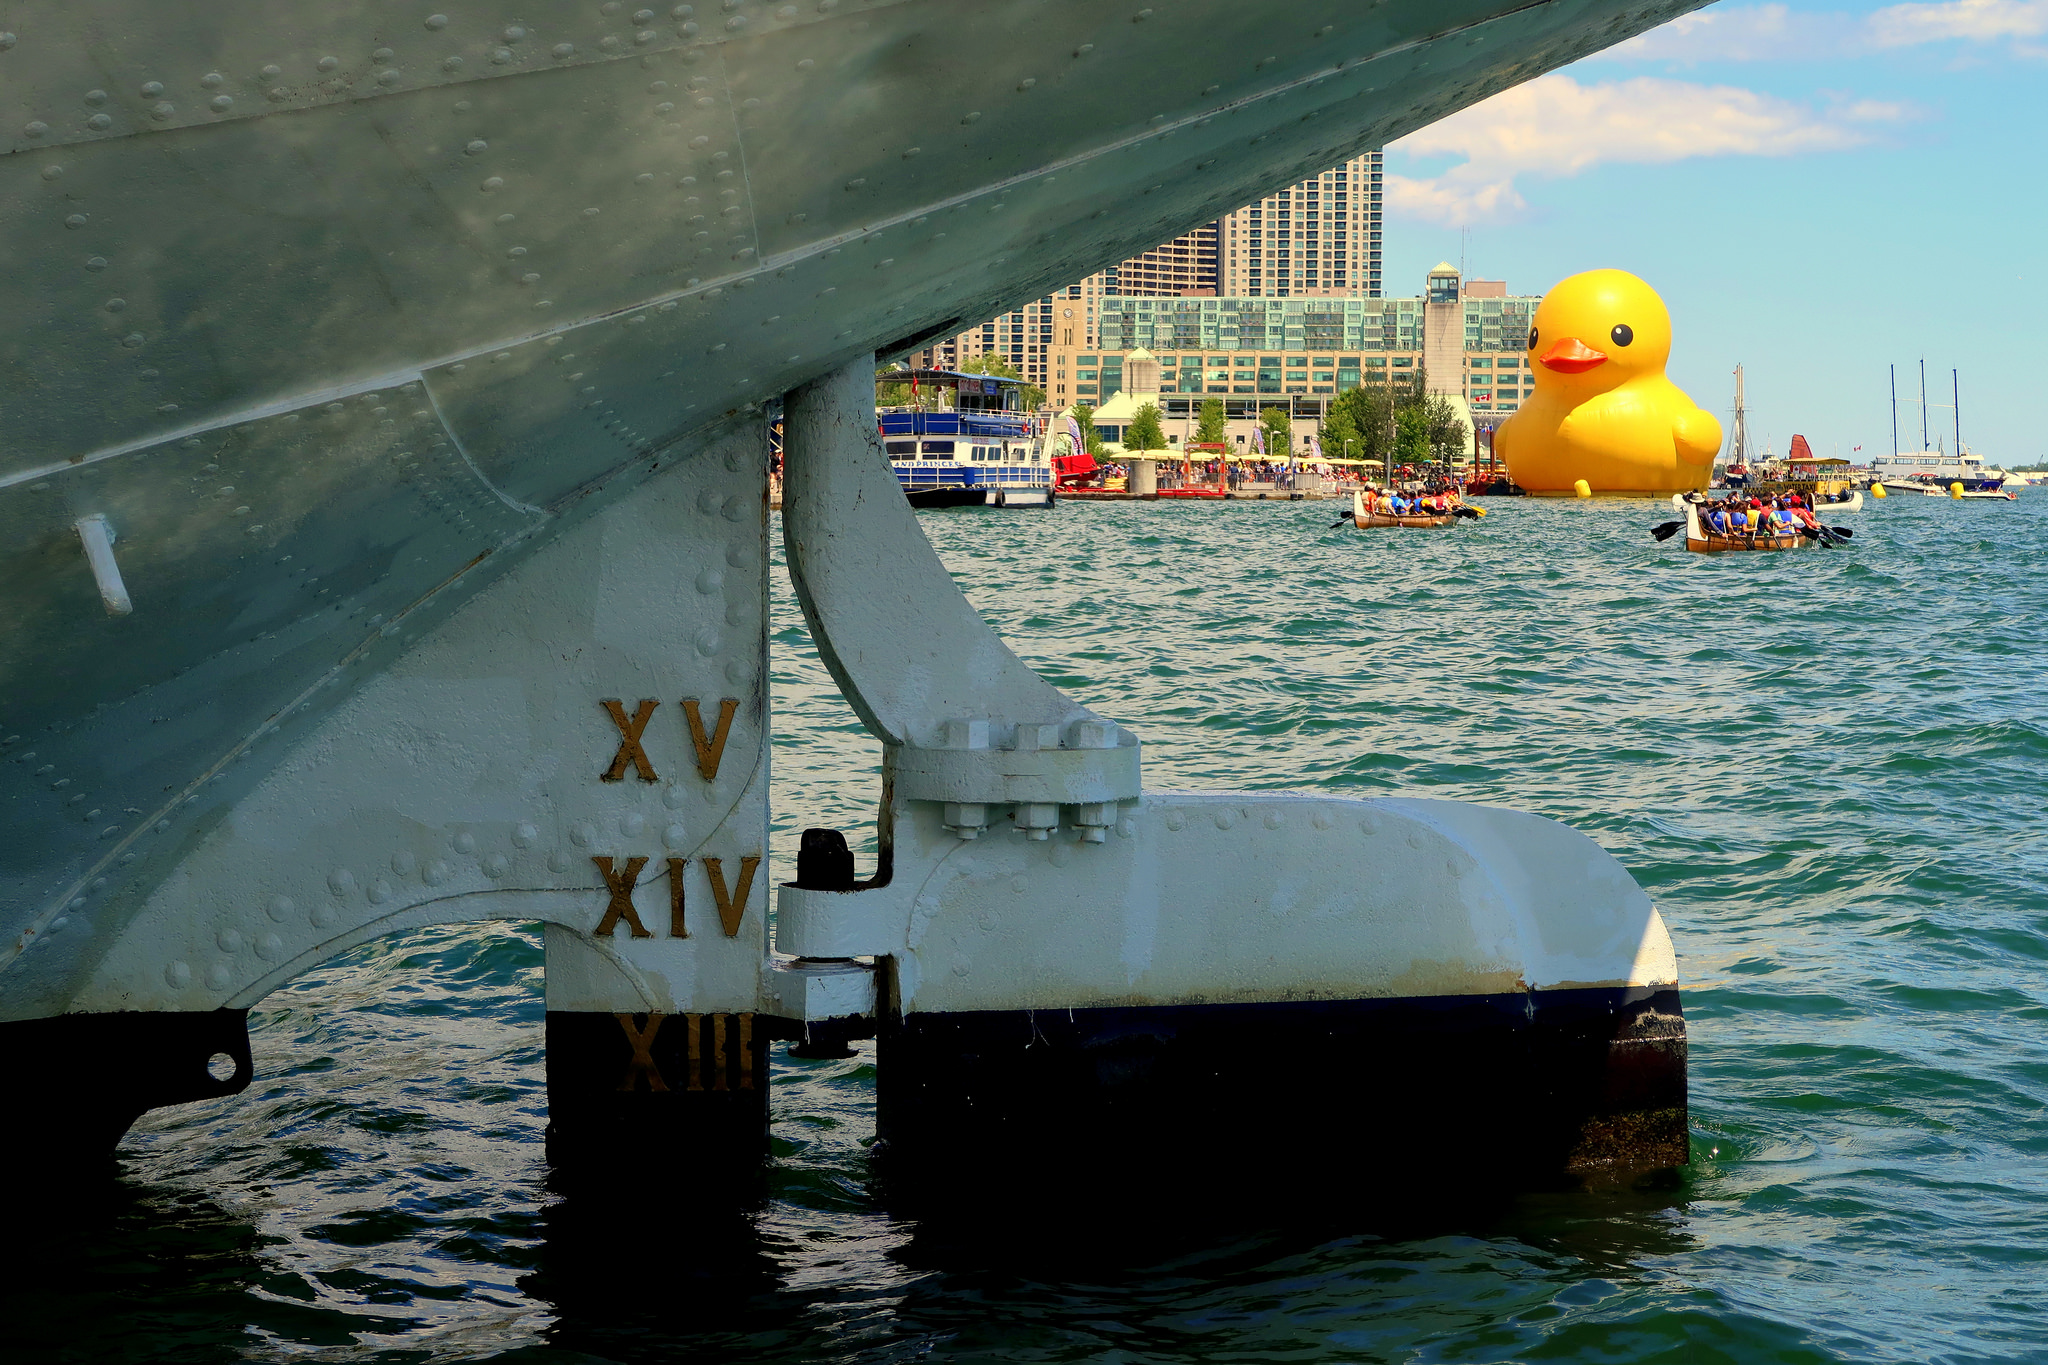 World's Biggest Rubber Duck by wyliepoon